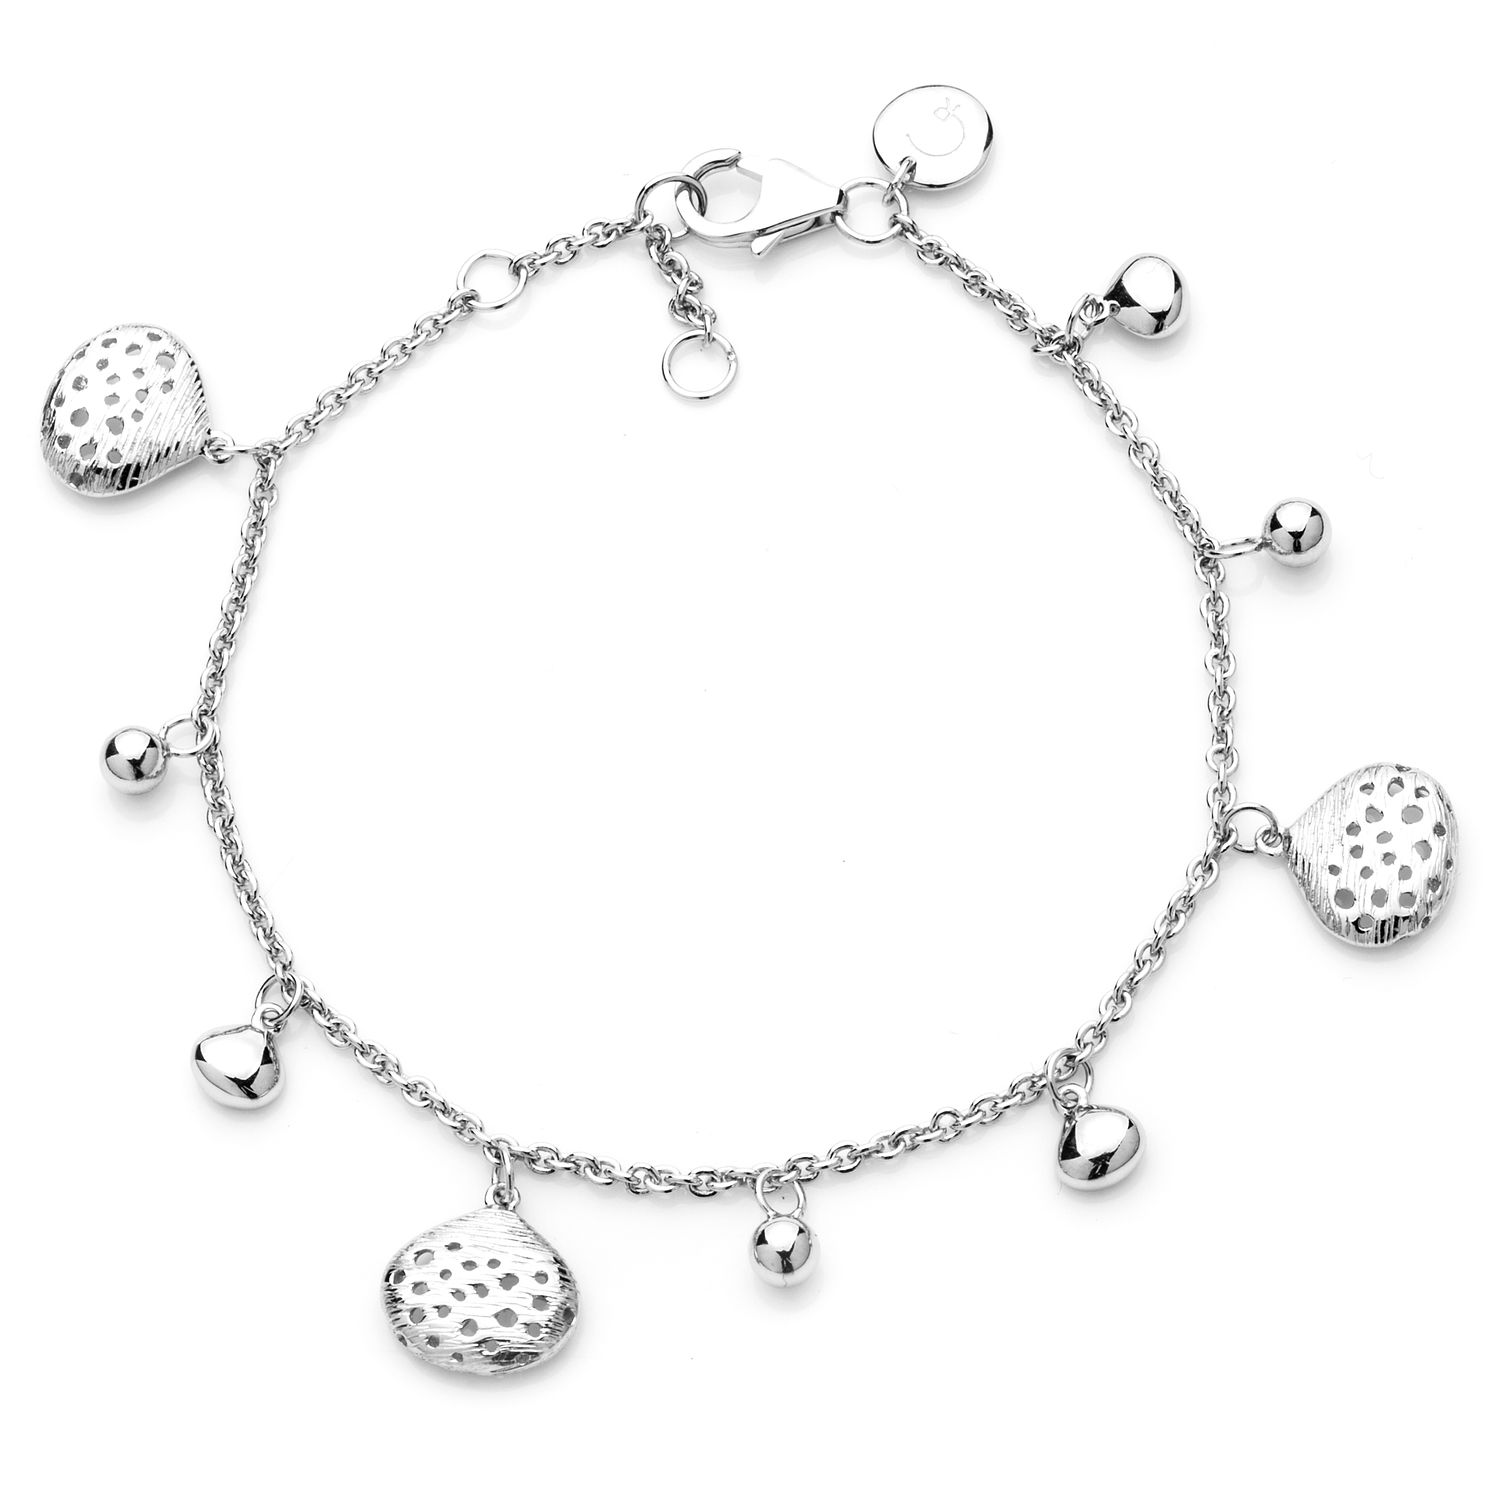 Rachel Galley Silver 925 Cala Shell Charm Bracelet - Product number 1376446